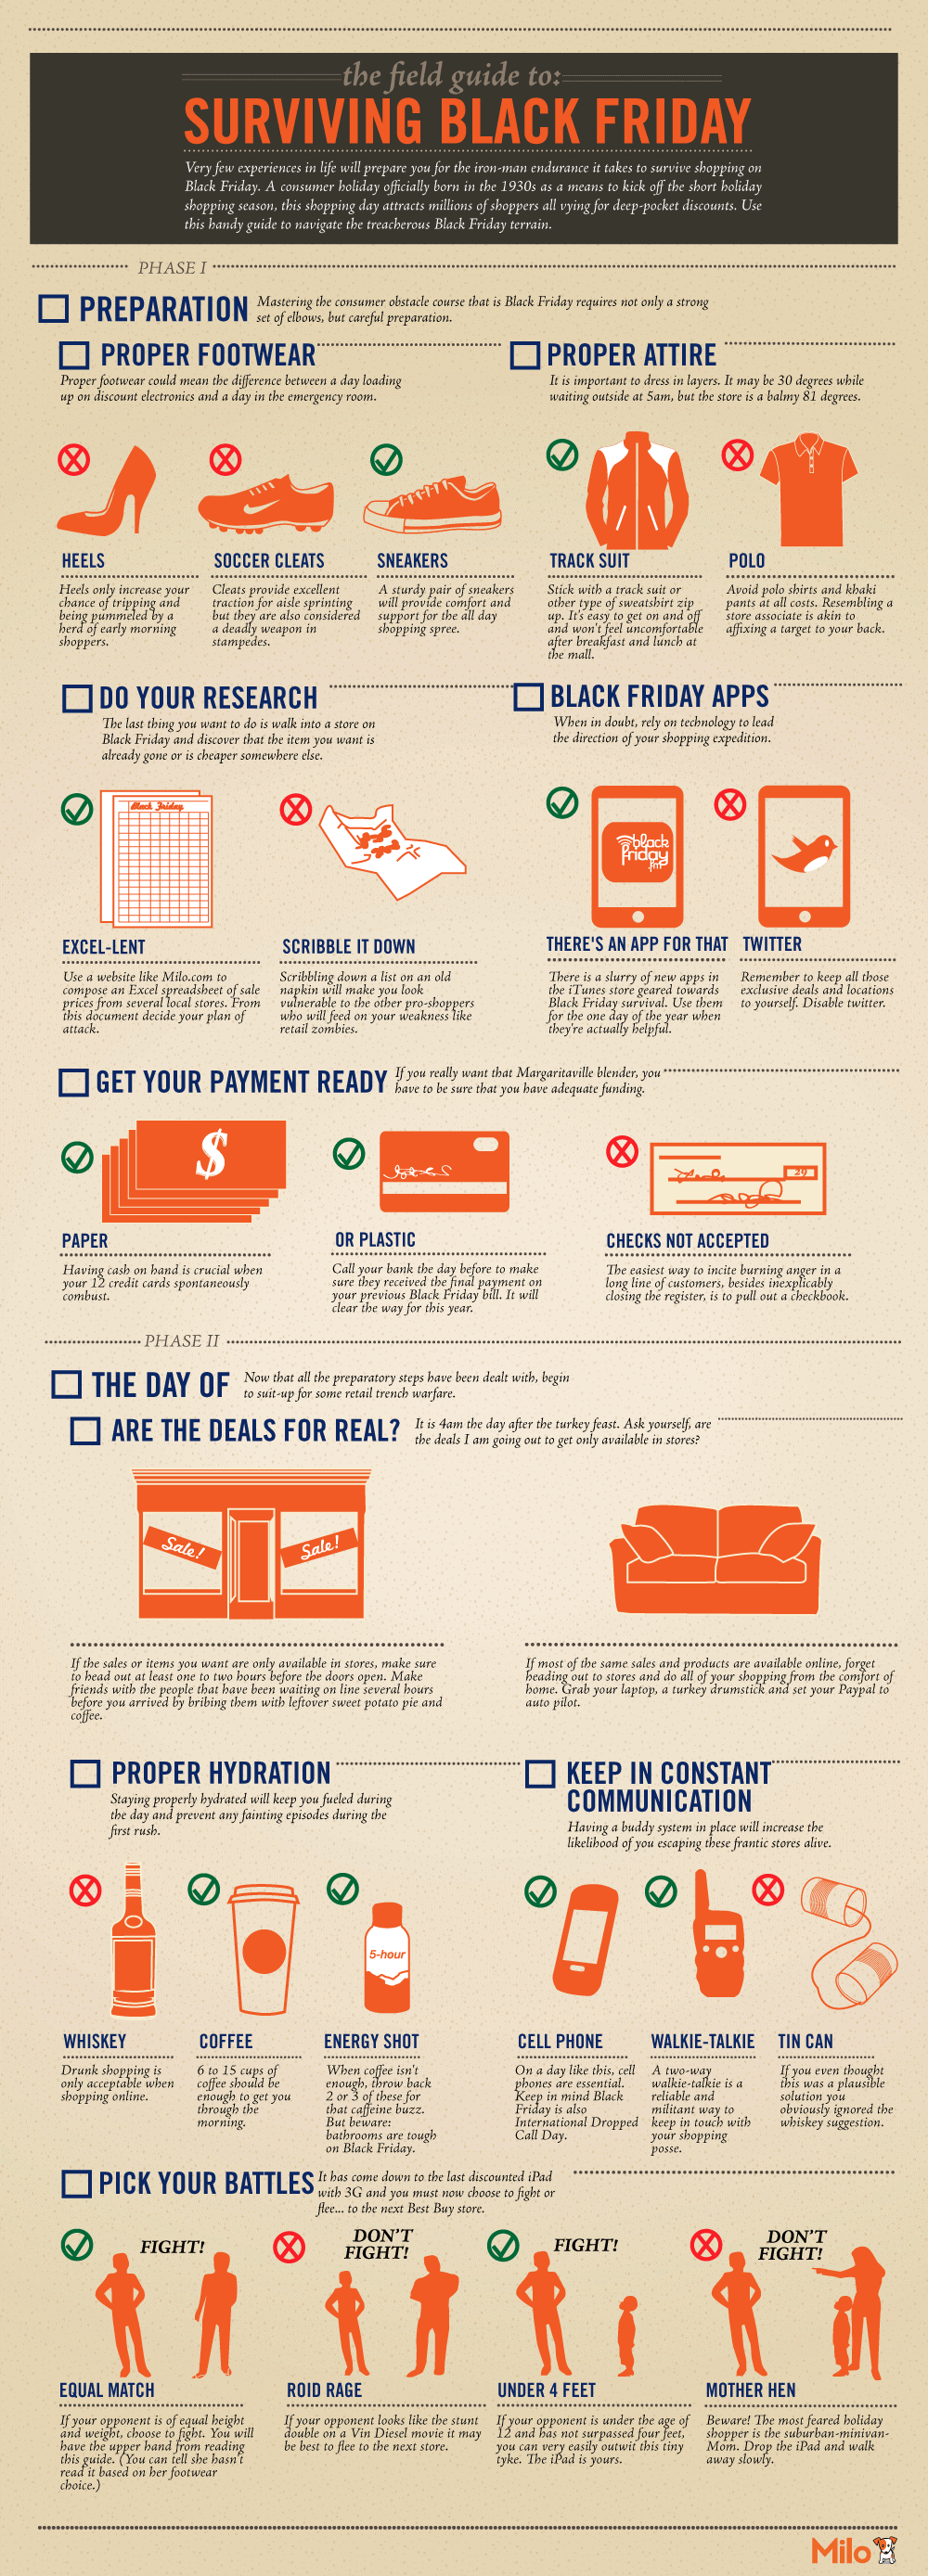 Holiday Season Shopping: the MOA infographic roundups